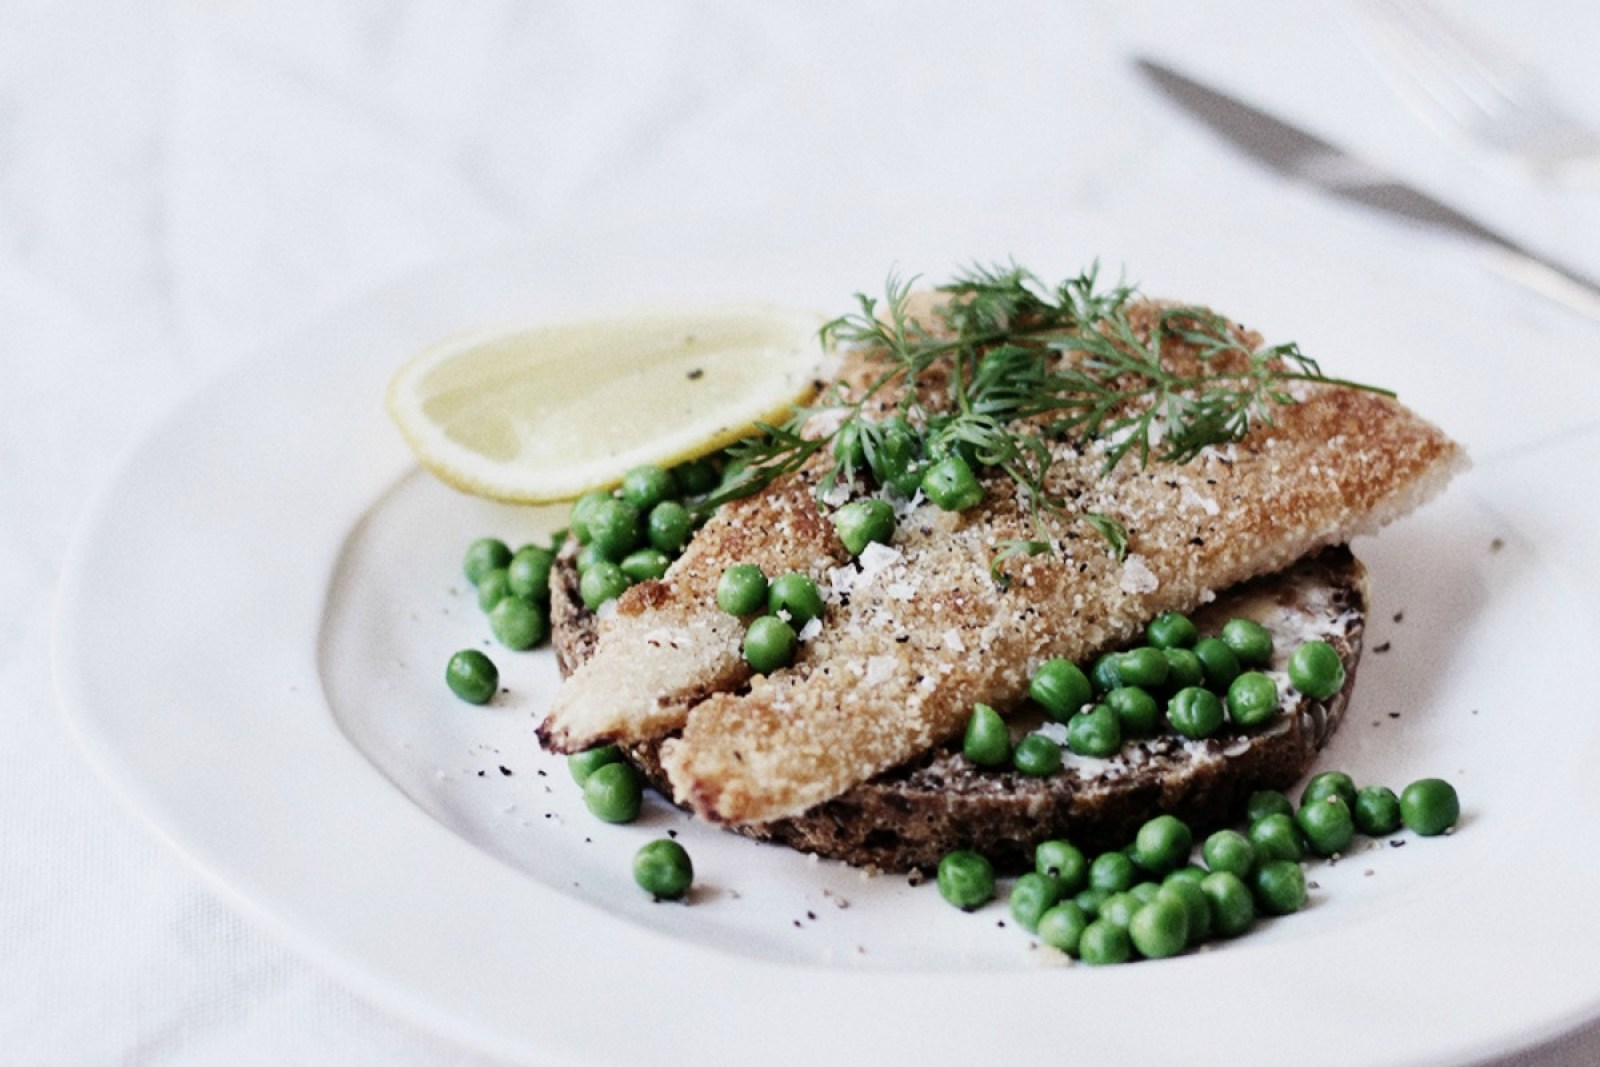 (Fish Style) Parsnip Fillets [Vegan]